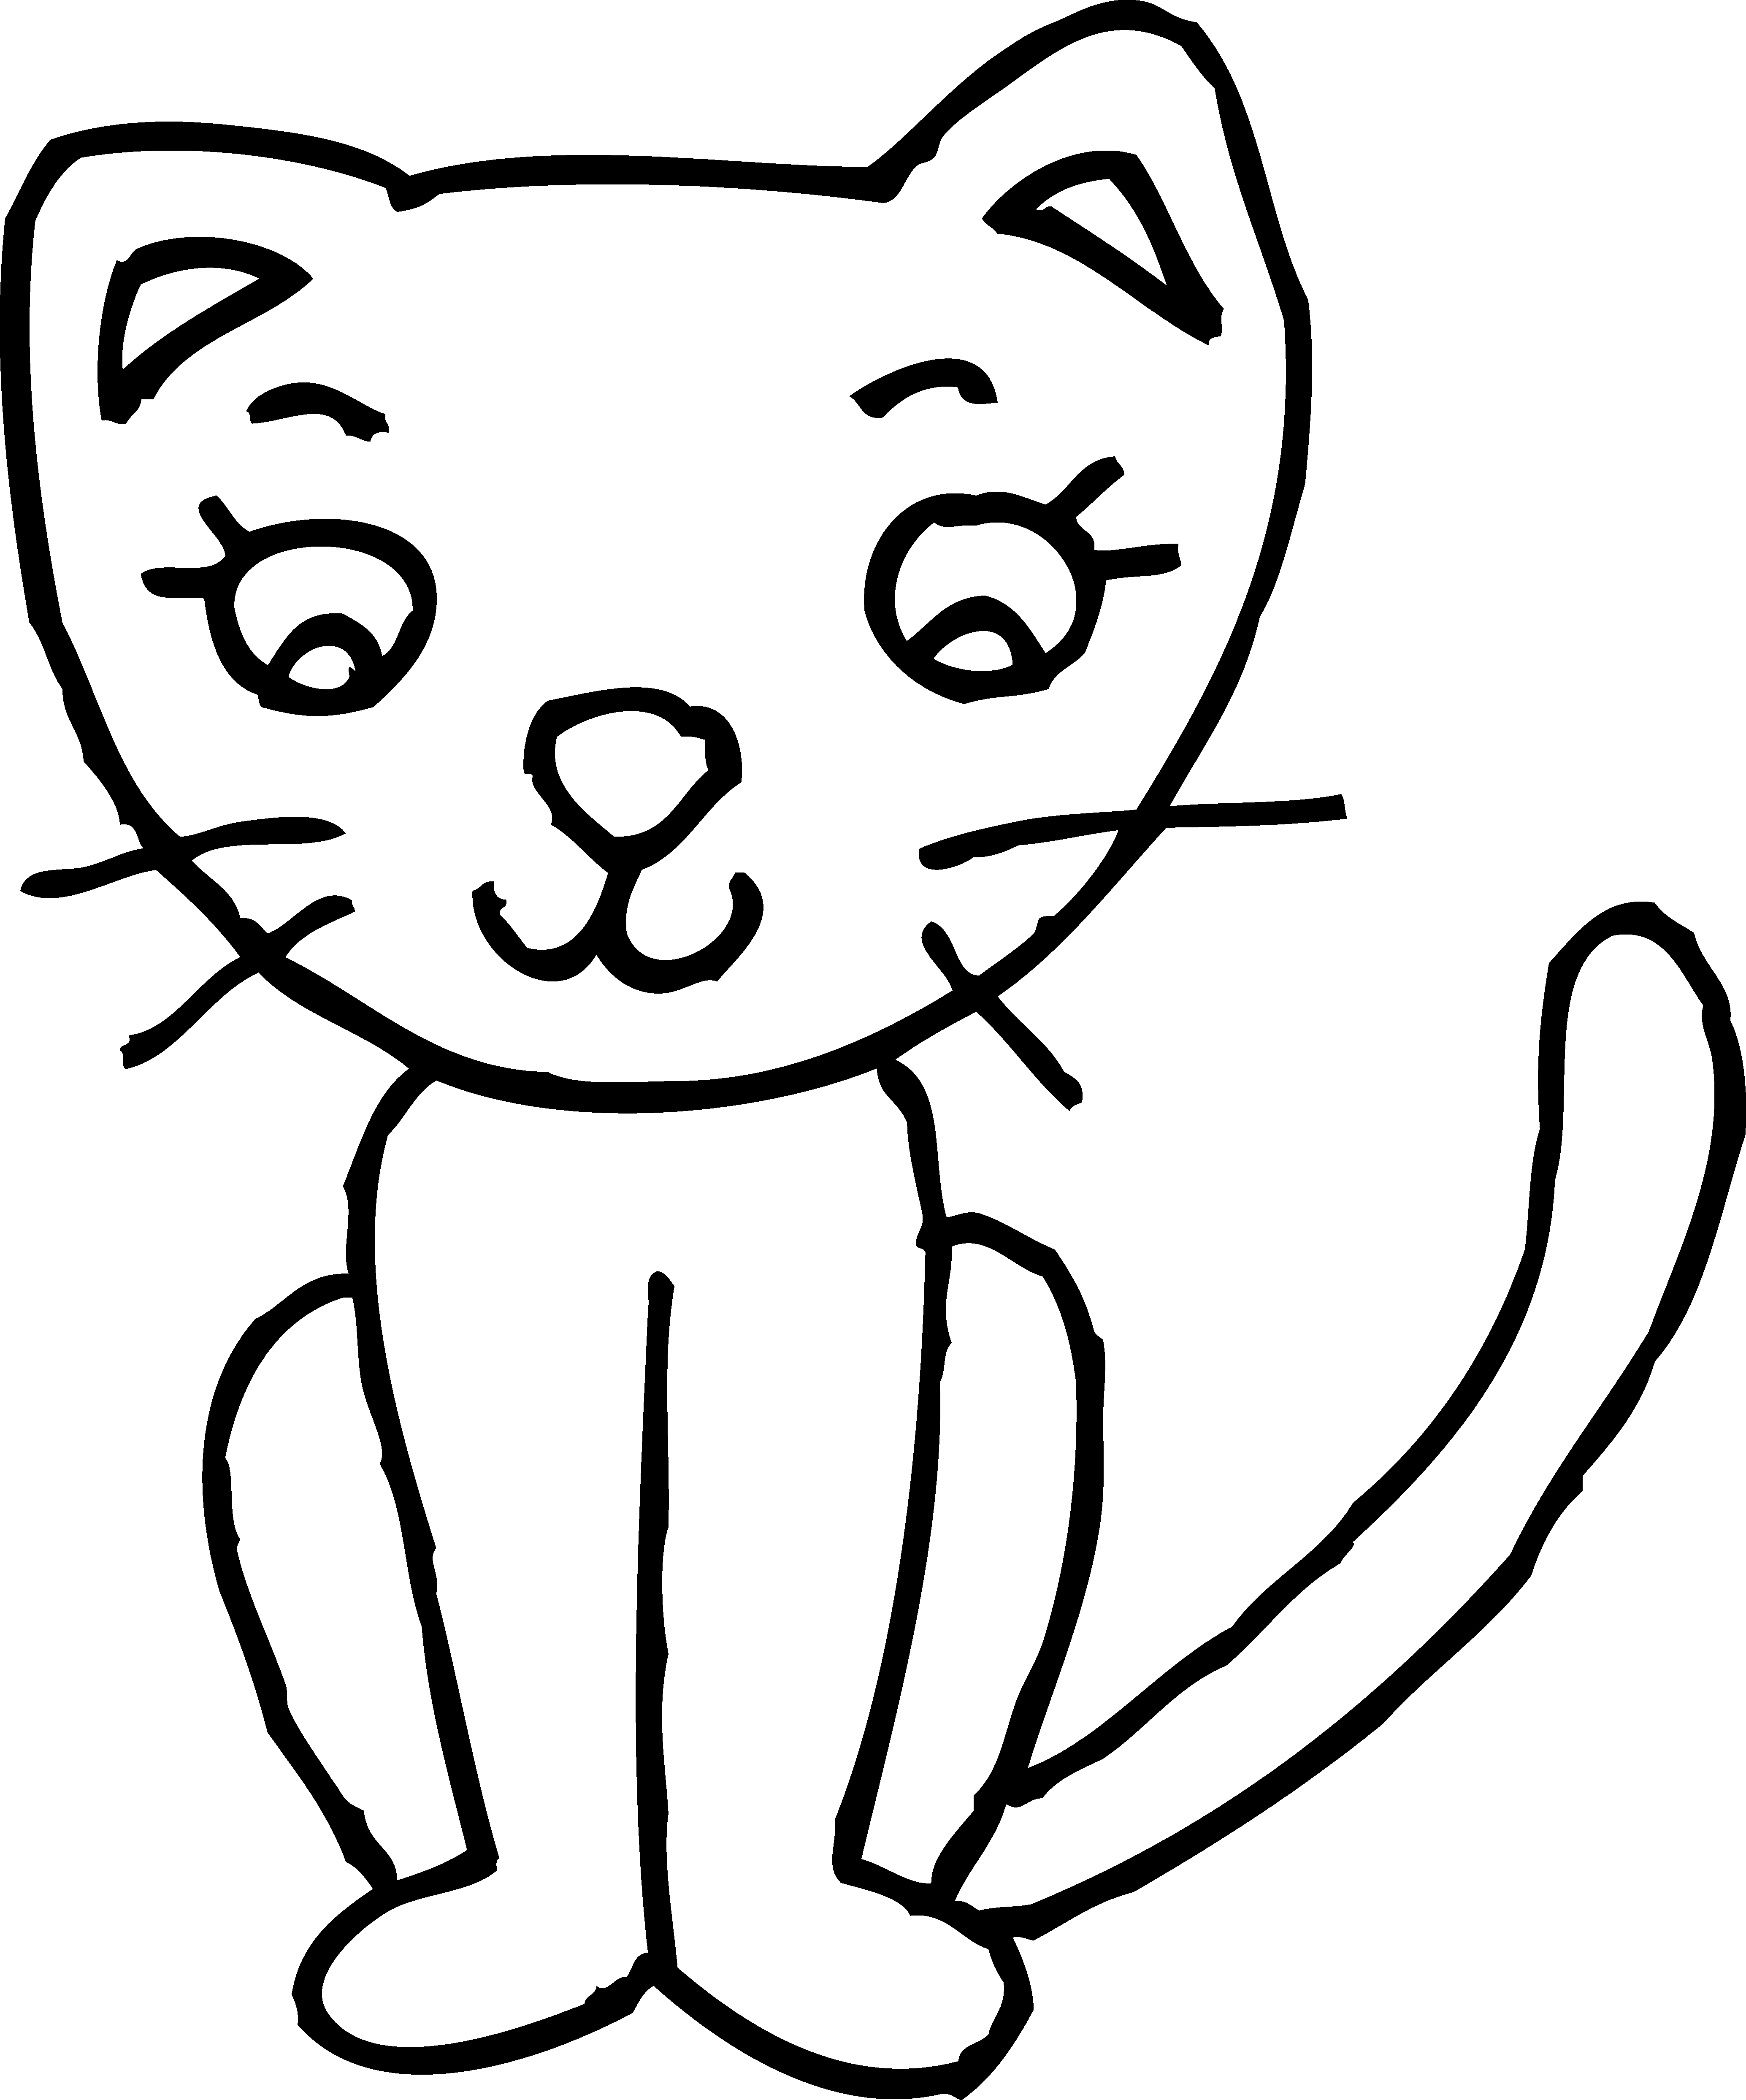 4137x4975 Black And White Cat Clipart